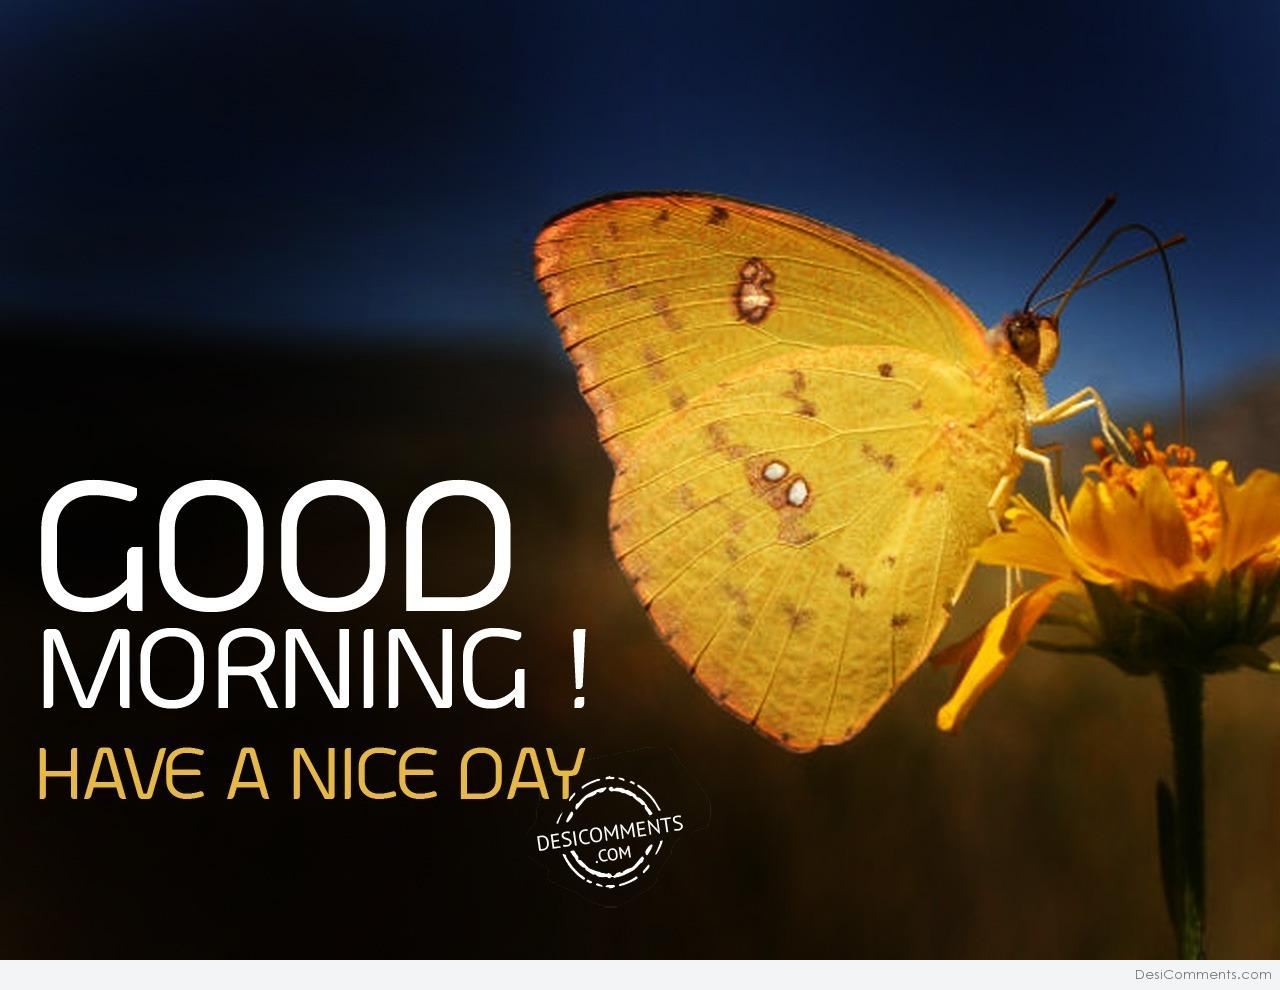 Good Morning Have A Nice Day - DesiComments.com